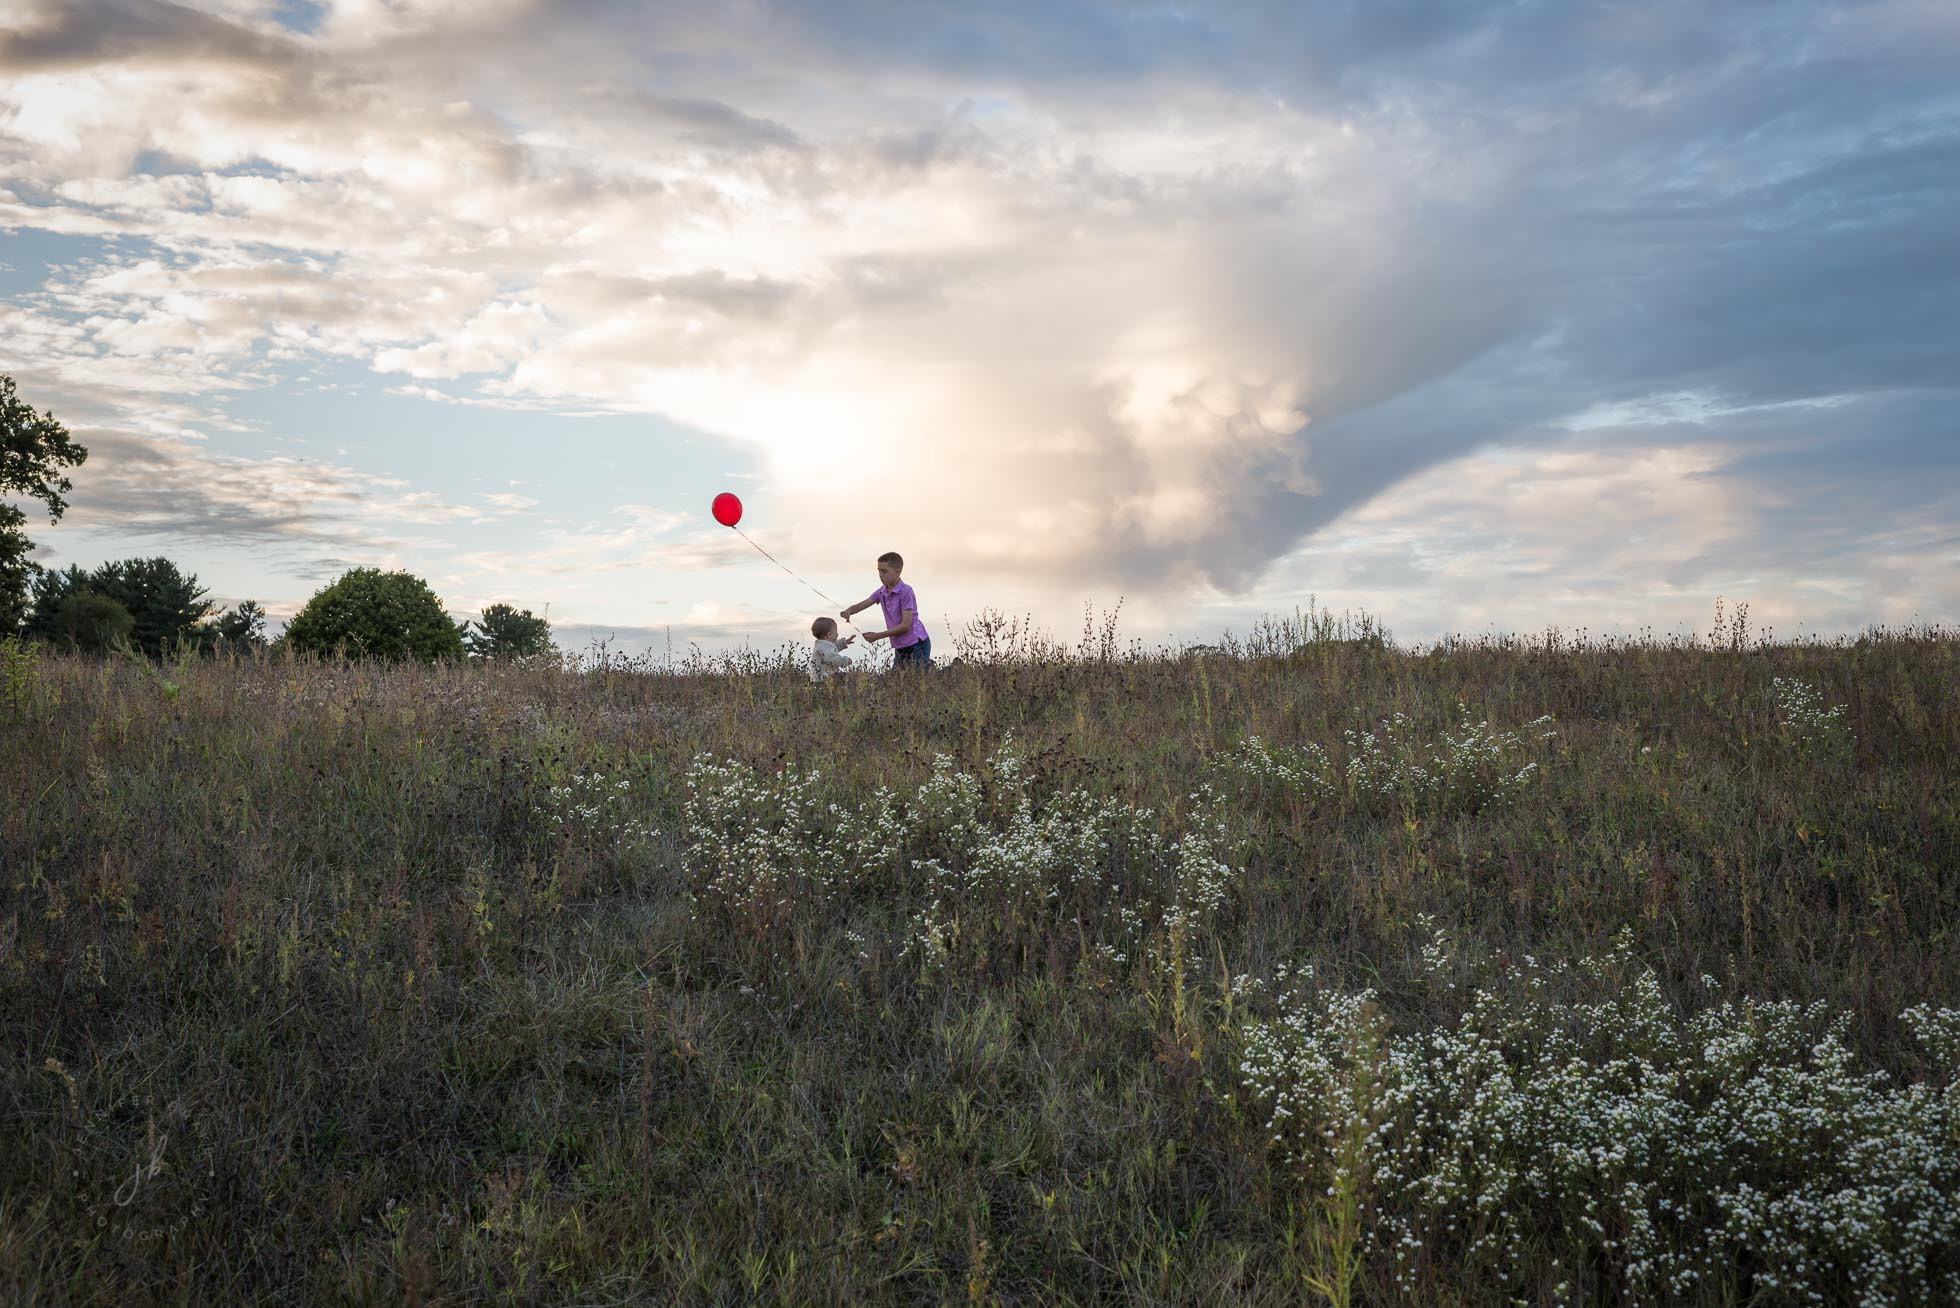 A big brother shares his red balloon with his baby brother while sitting atop a hill of wildflowers in South Bend, Indiana.